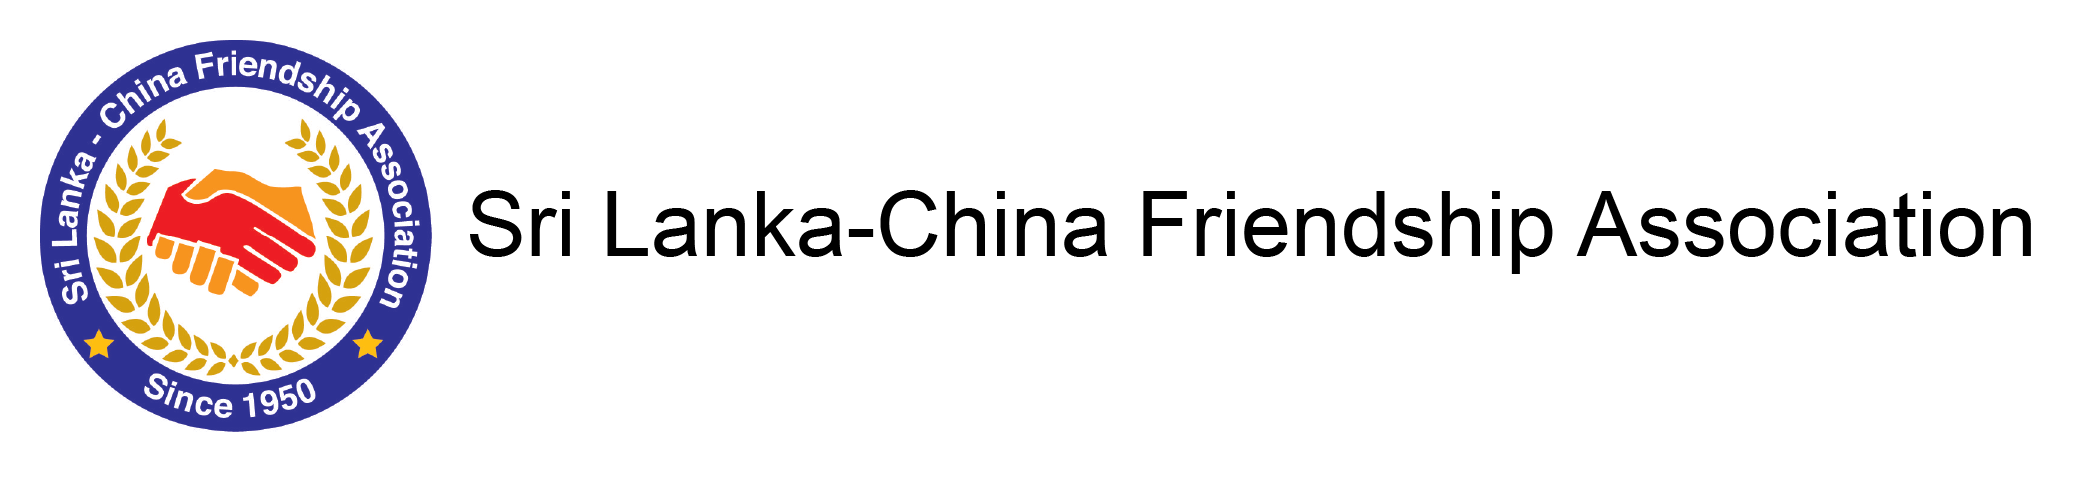 Sri Lanka-China Friendship Association